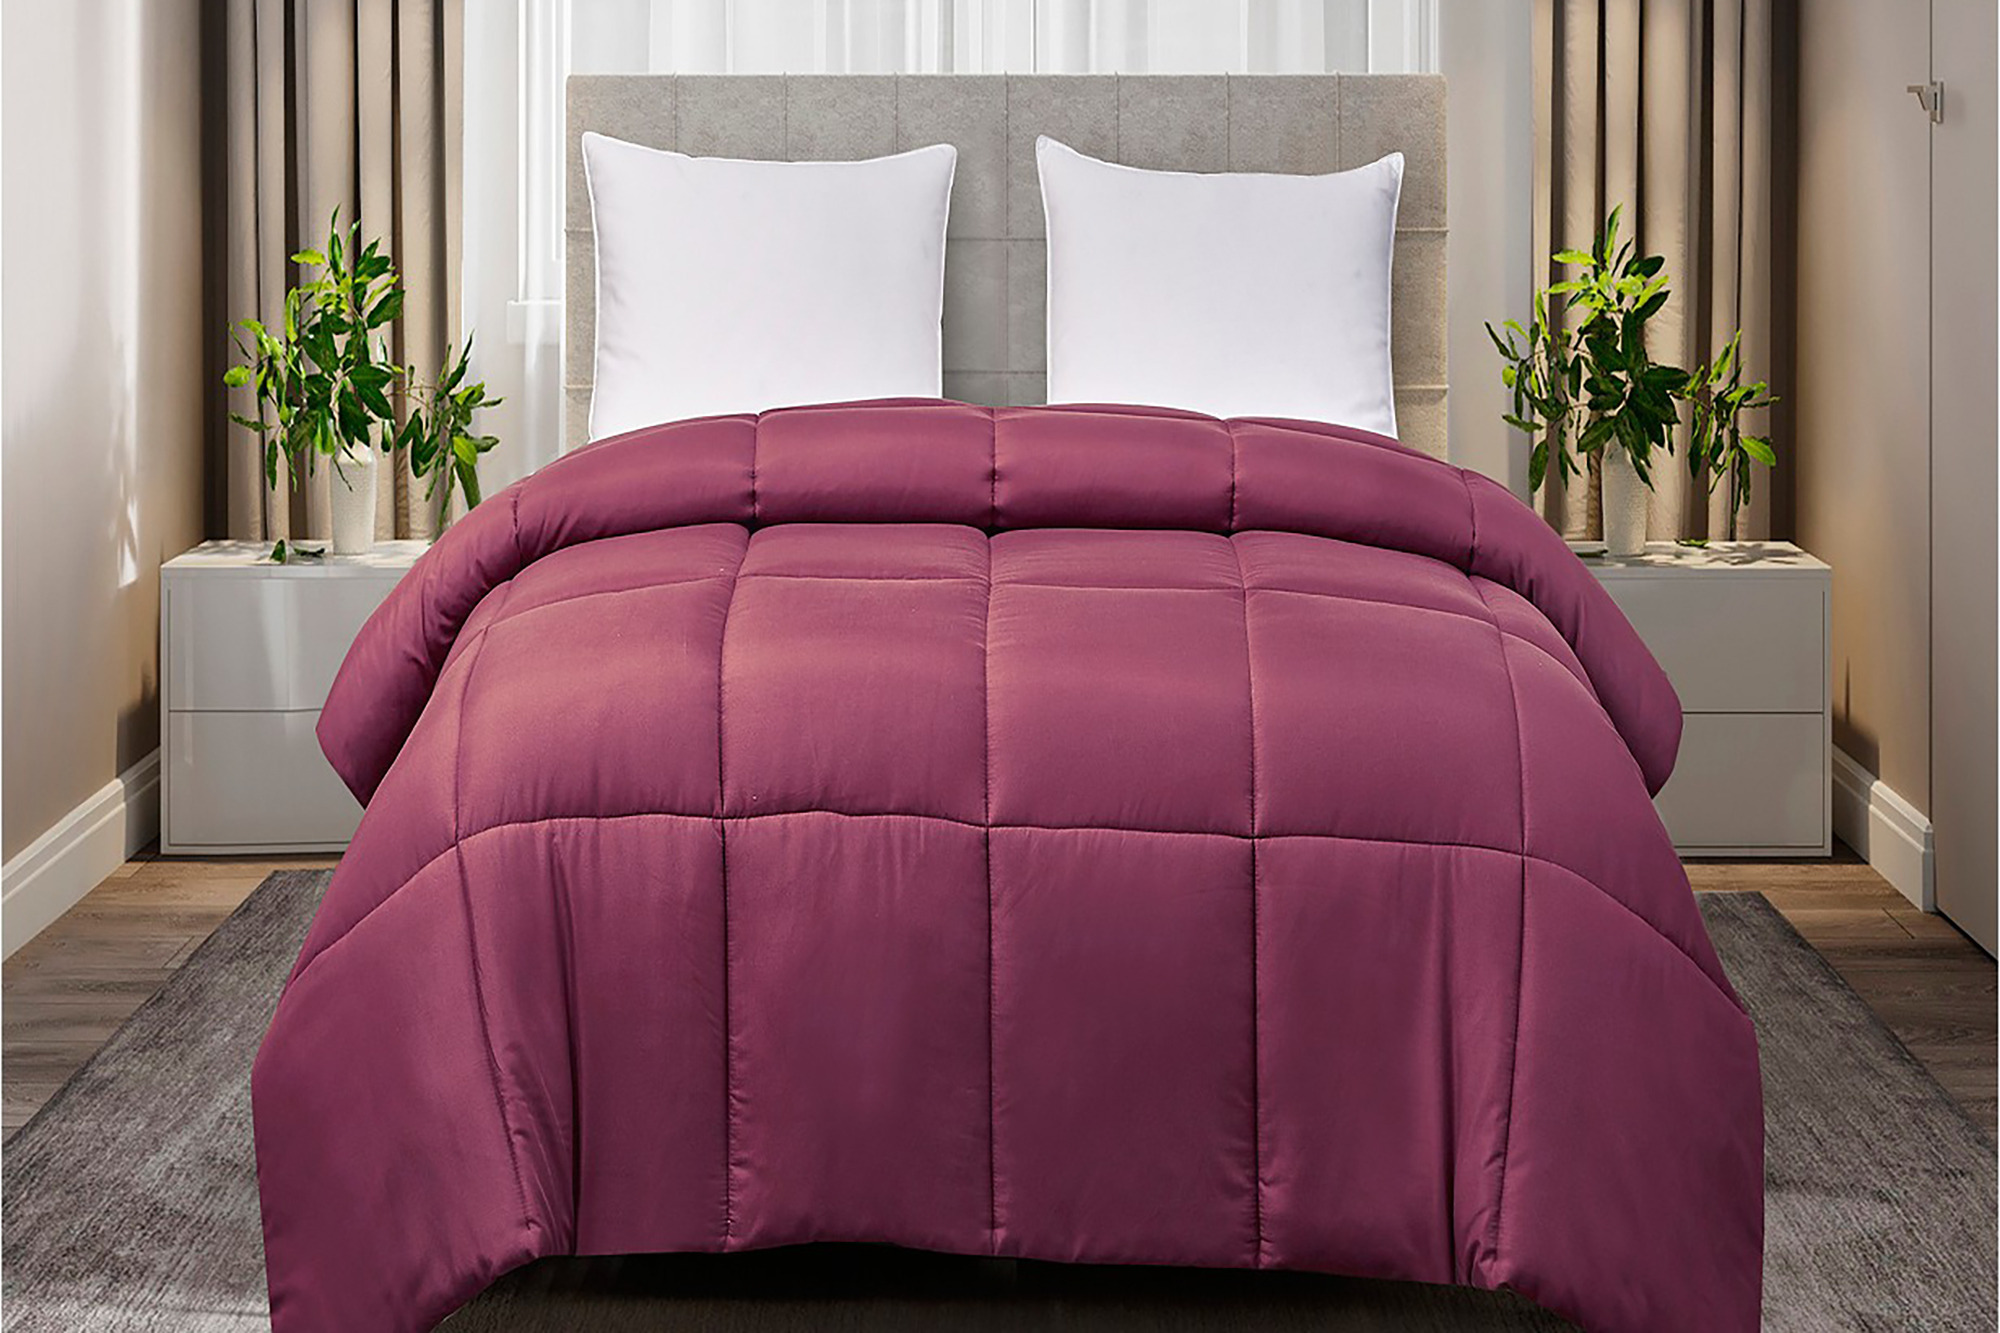 Macy S 20 Comforter Is Cyber Monday 2020 S Best Bedding Deal